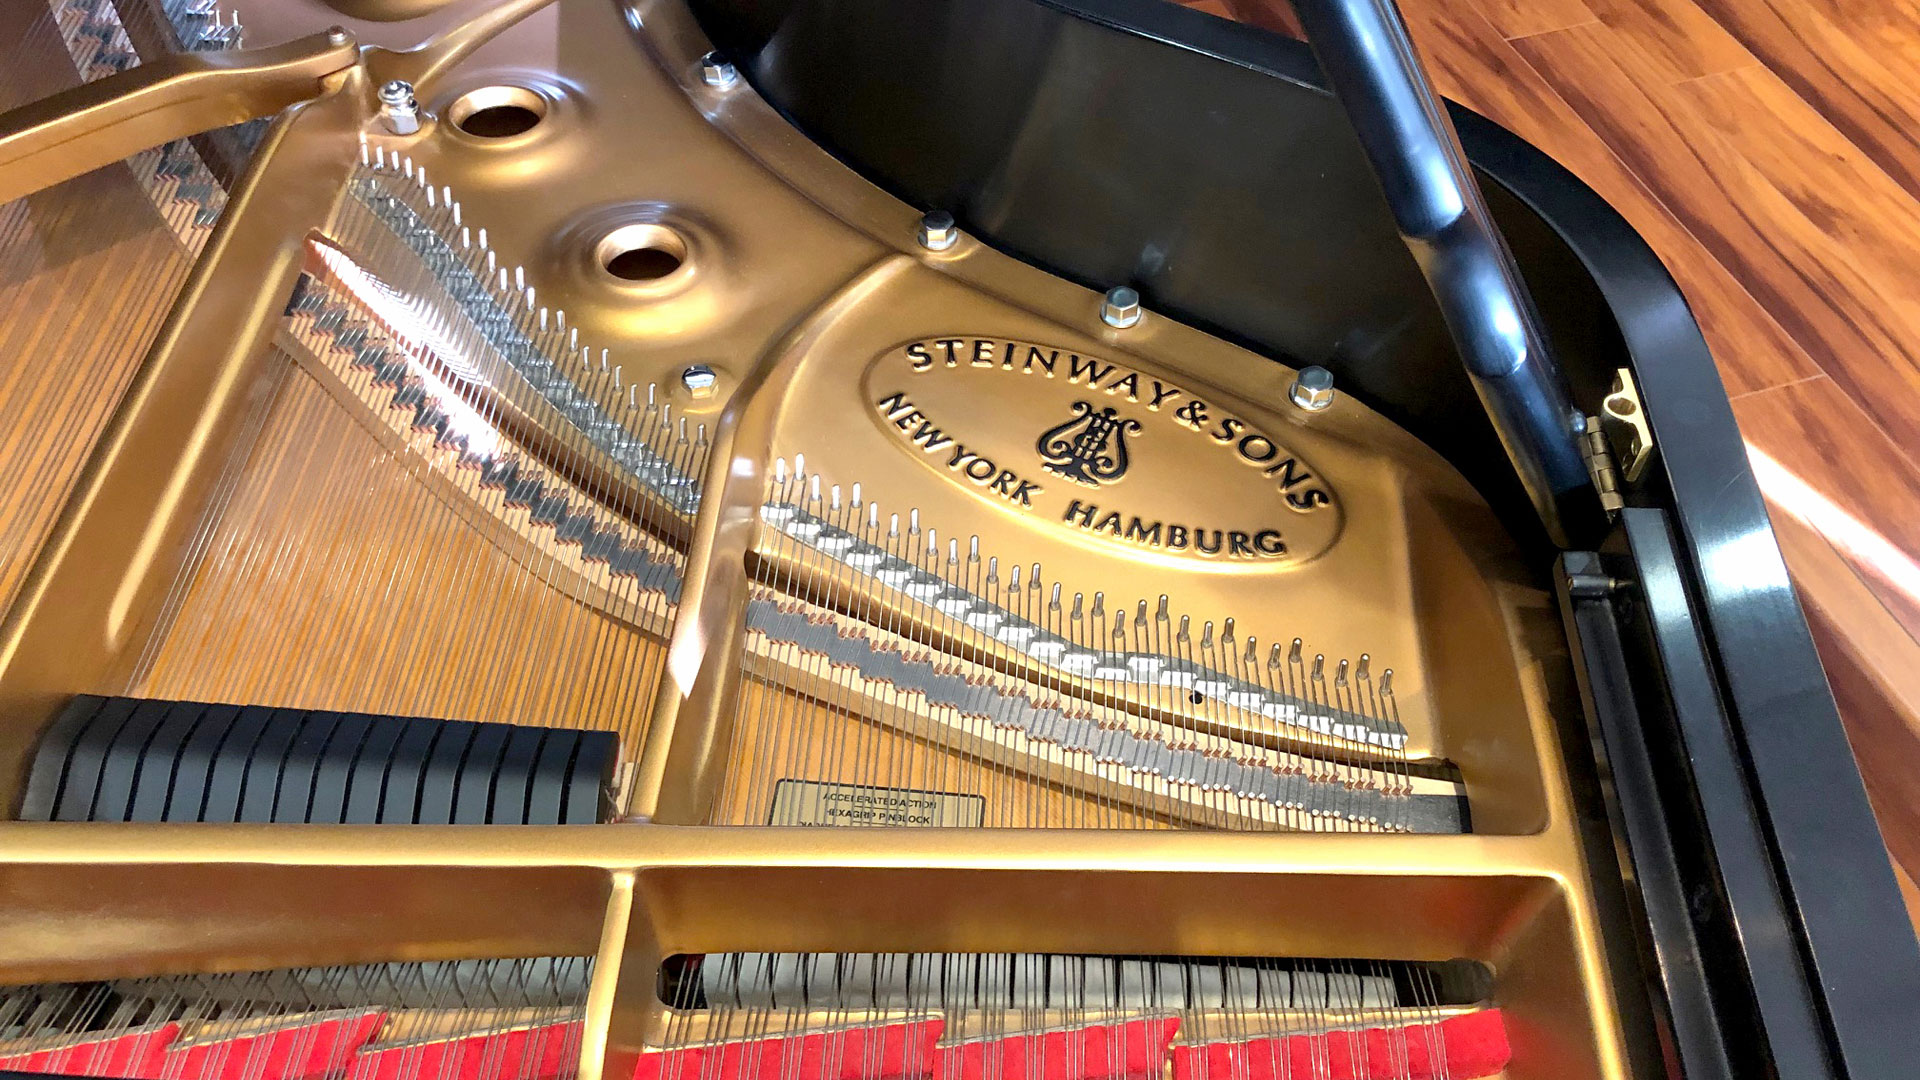 Model B Steinway Used Piano